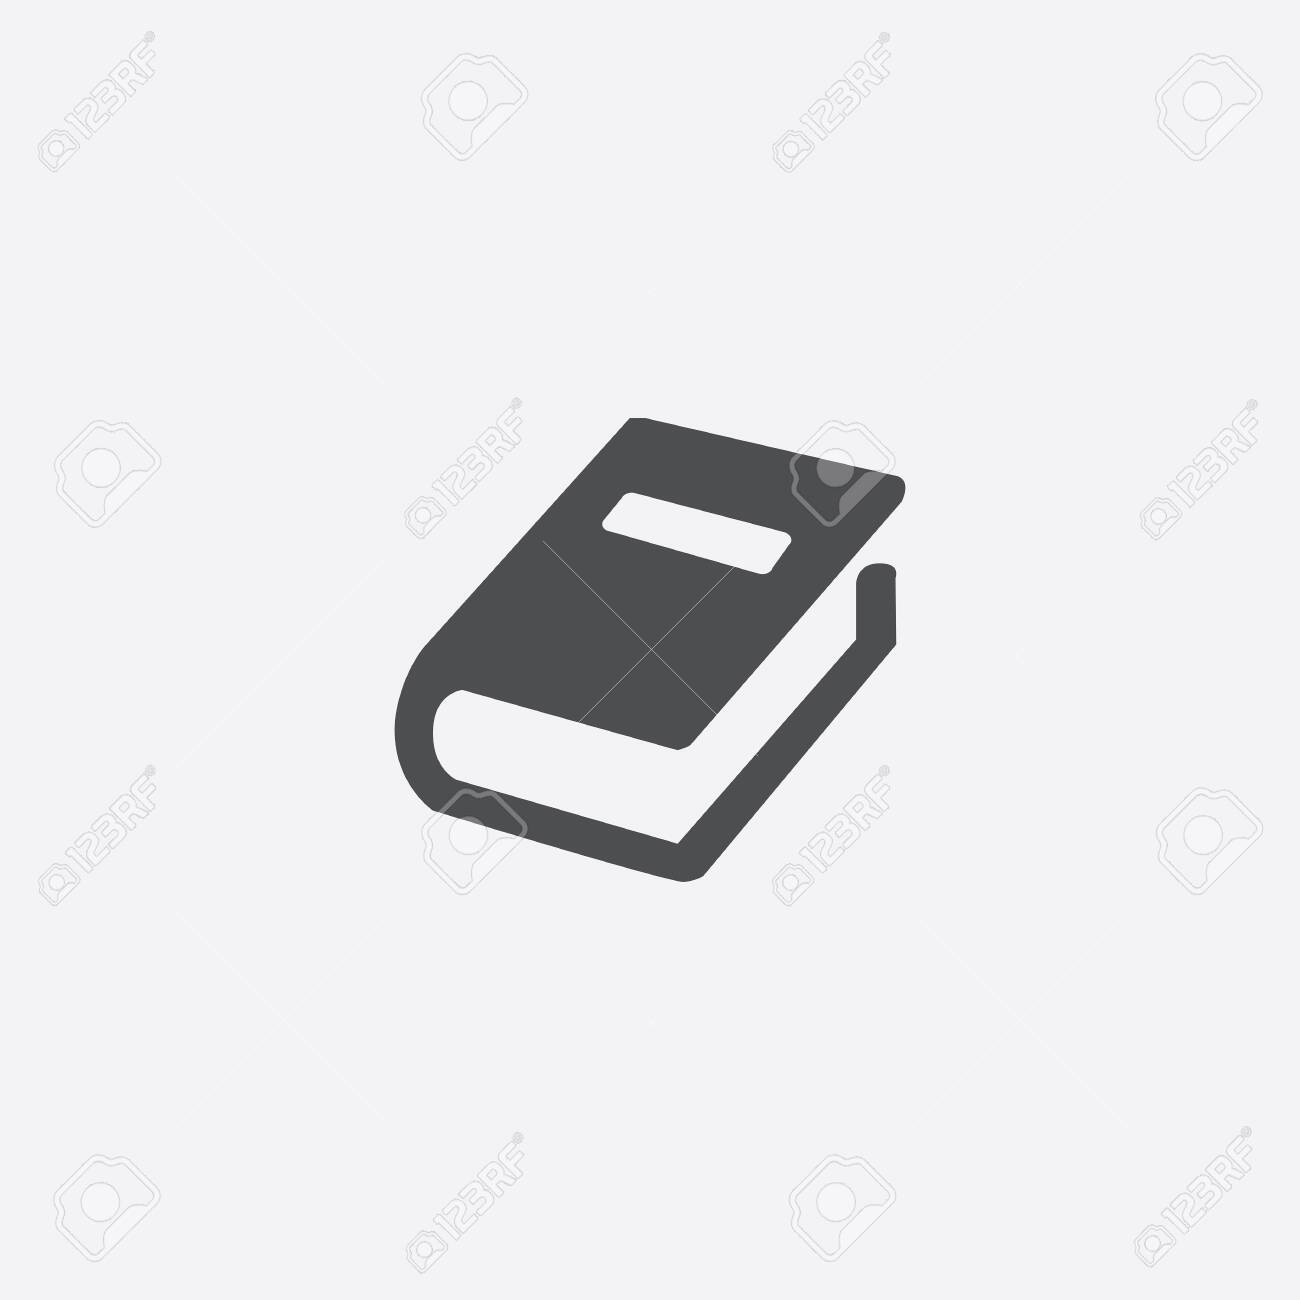 book icon, isolated, white background - 142166868